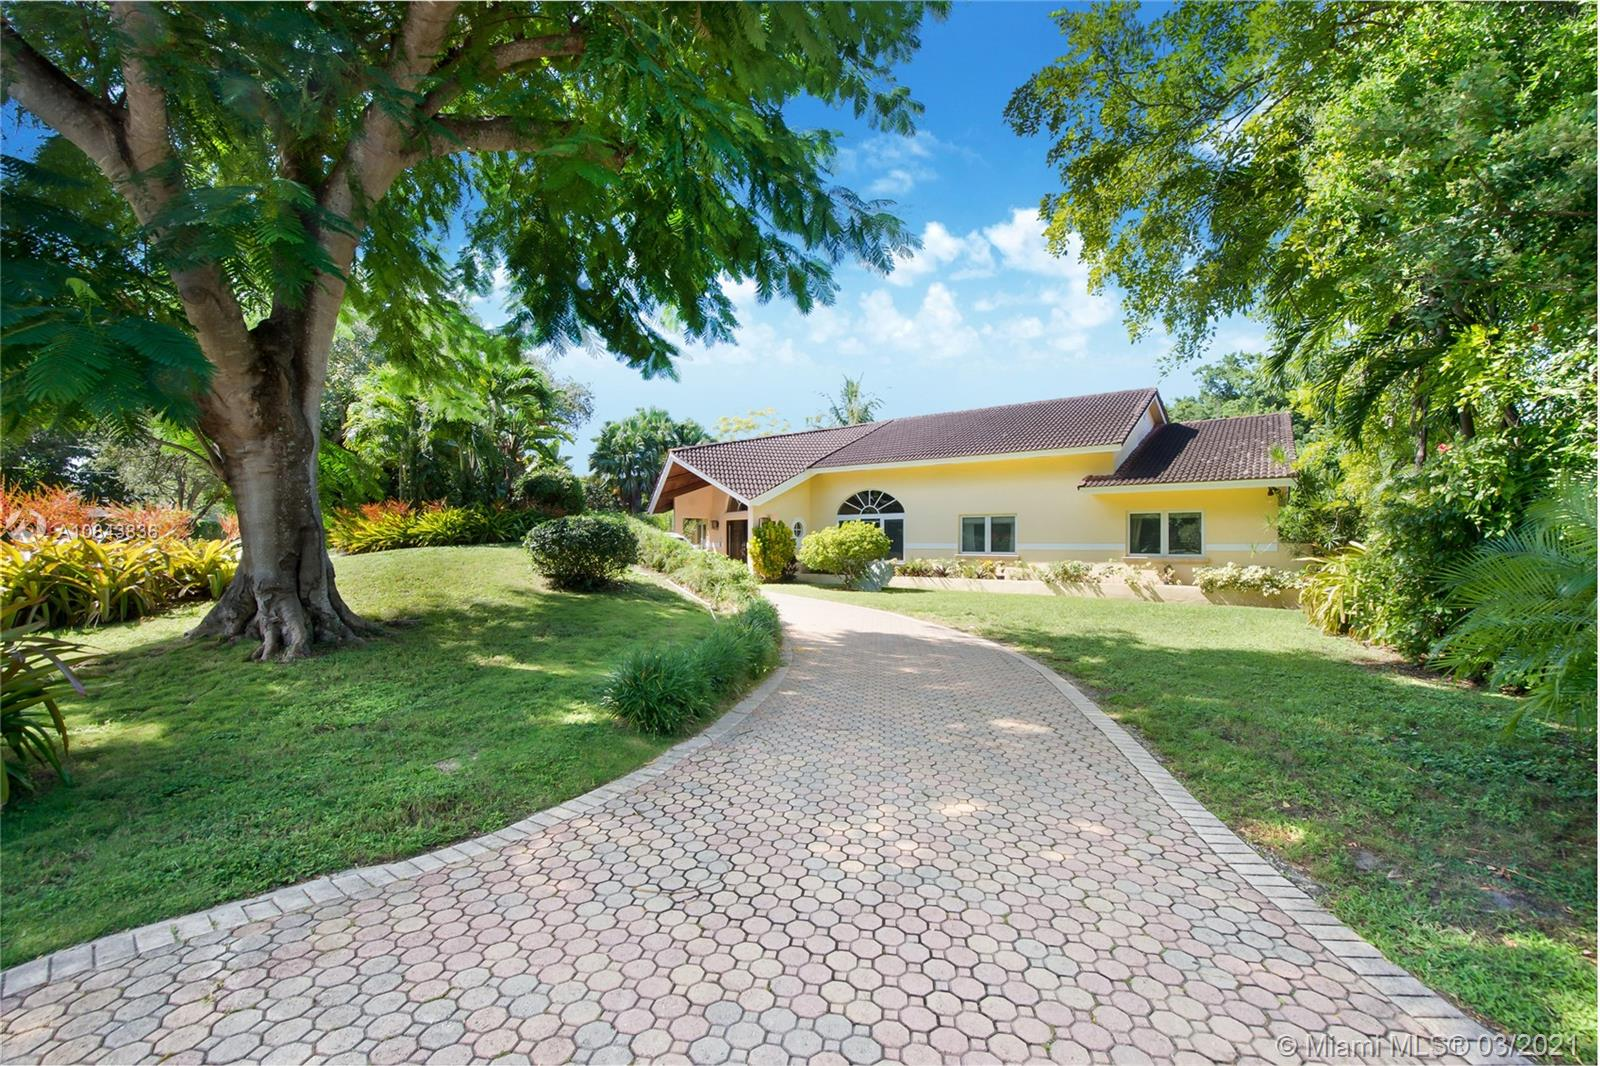 6465 S Mitchell Manor Cir, Pinecrest, Florida 33156, 5 Bedrooms Bedrooms, ,4 BathroomsBathrooms,Residential,For Sale,6465 S Mitchell Manor Cir,A10843836